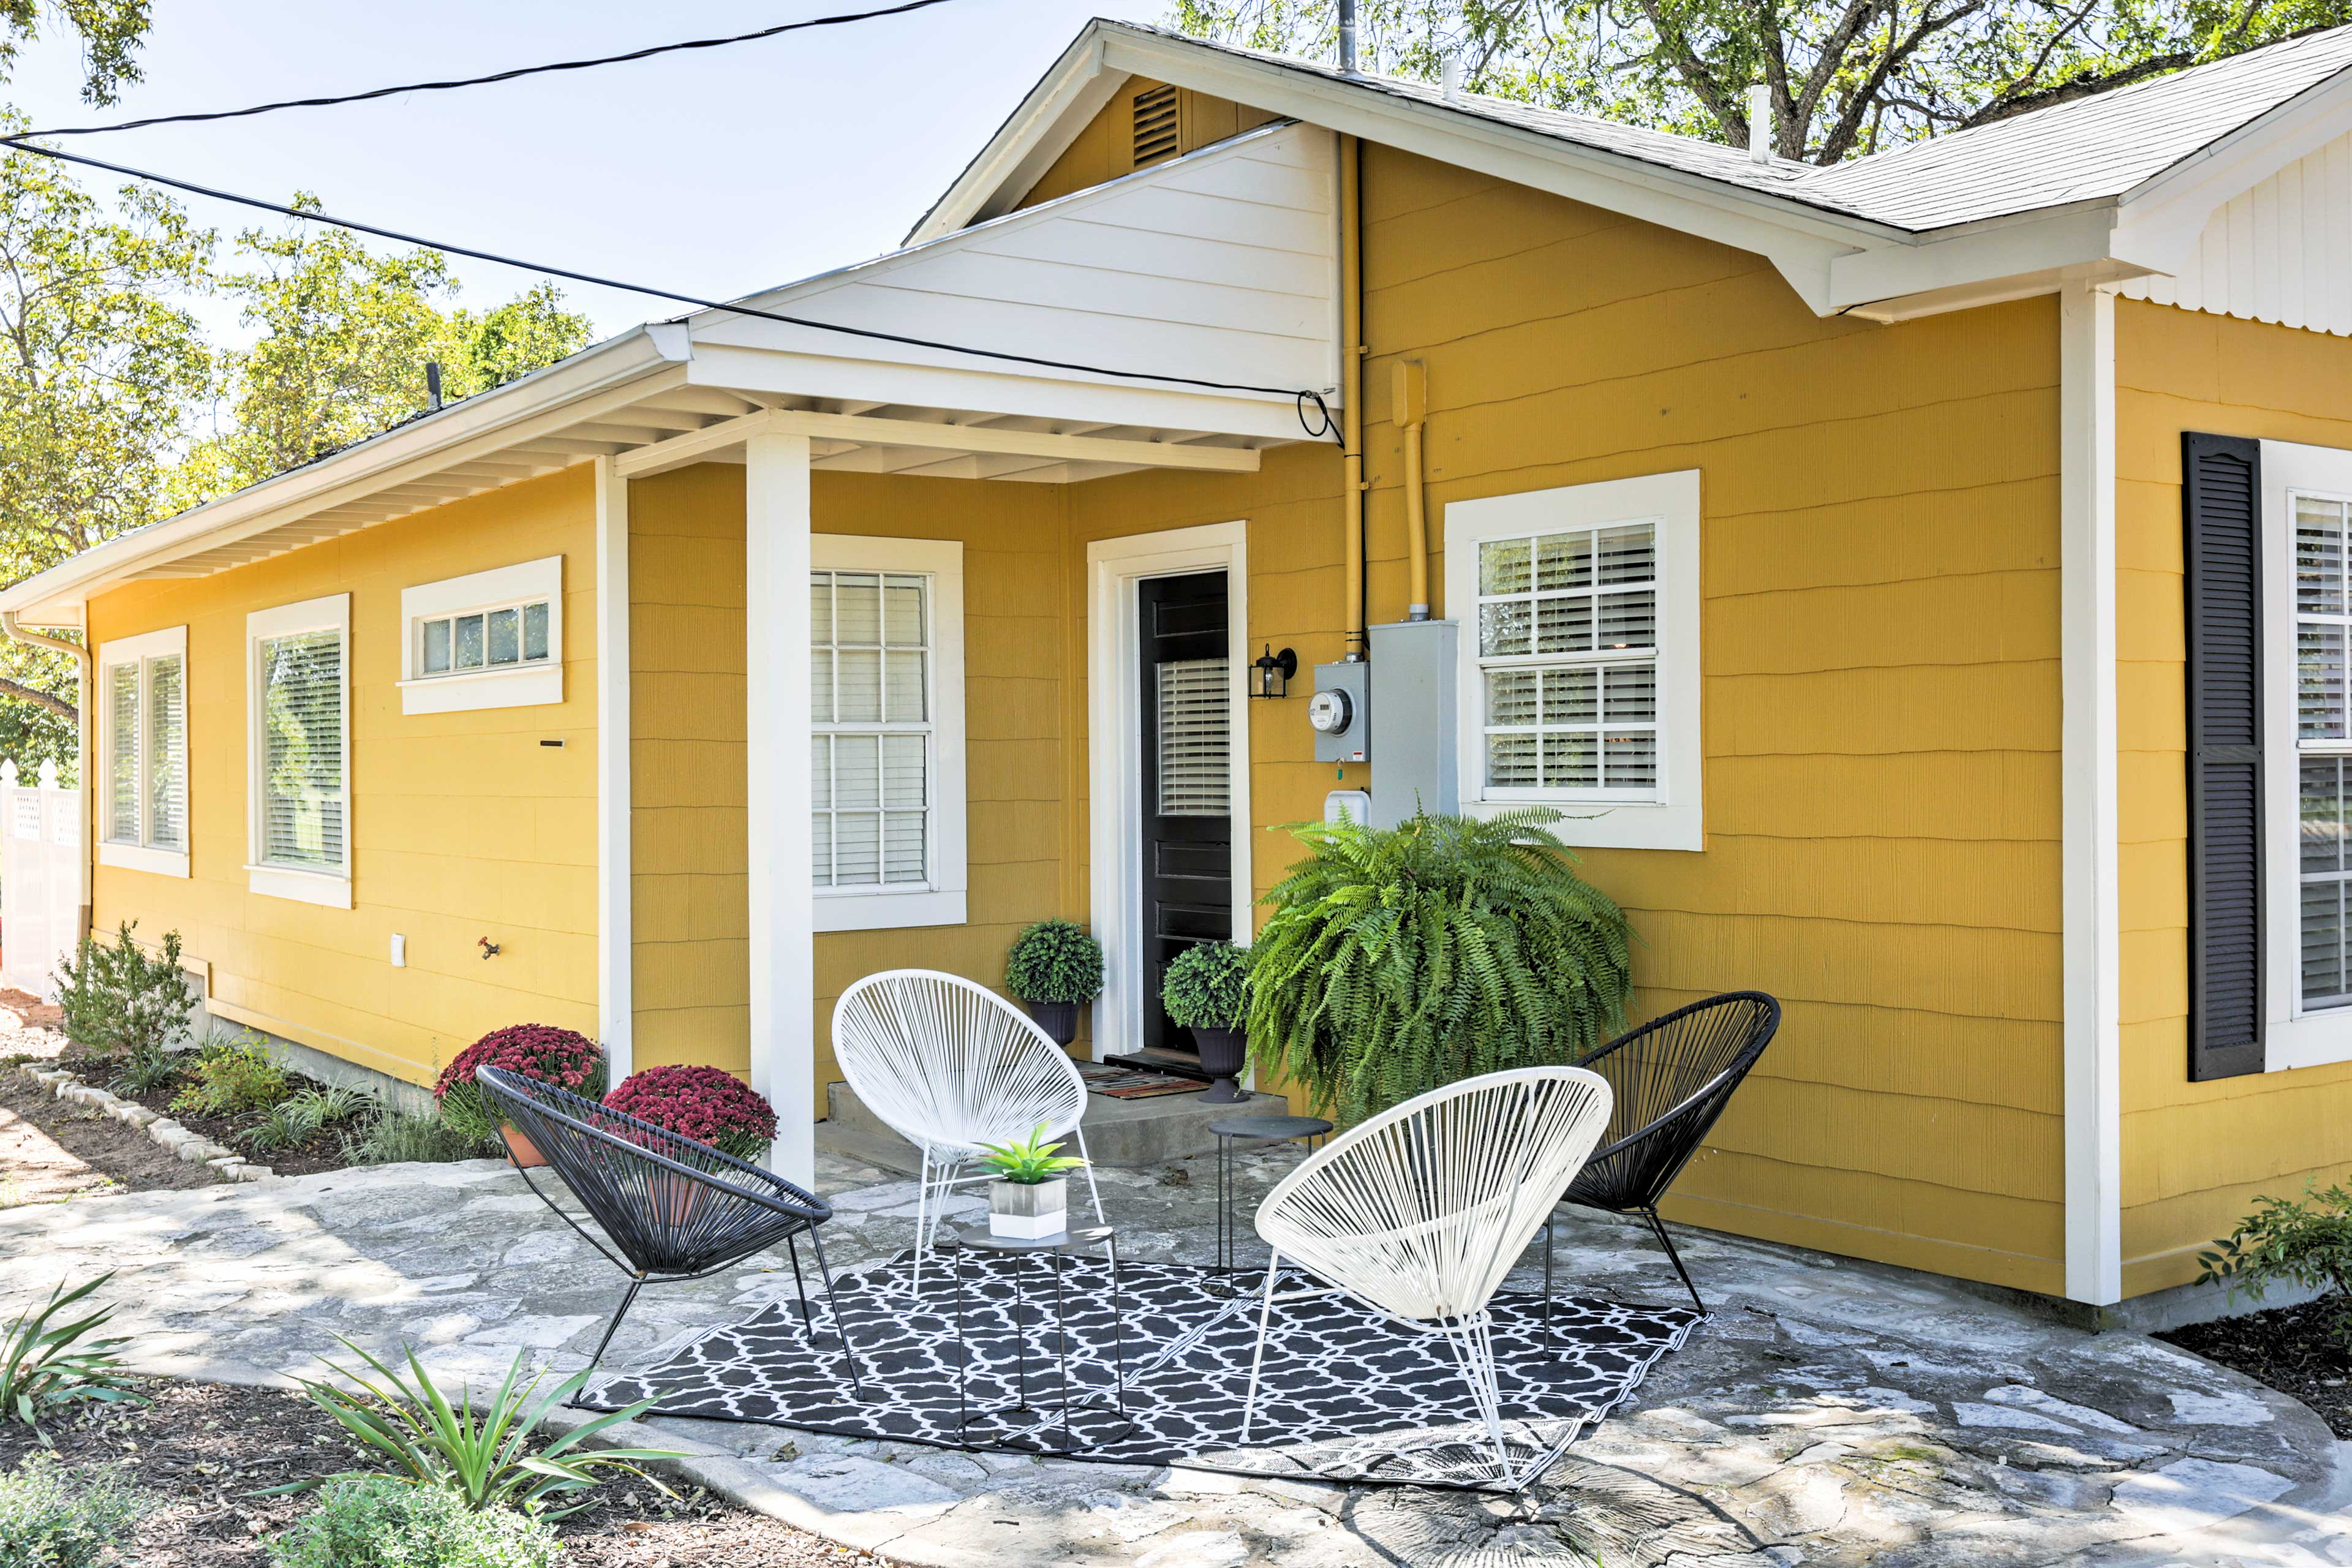 Fun and adventure awaits when you stay at this beautiful home in Fredericksburg.